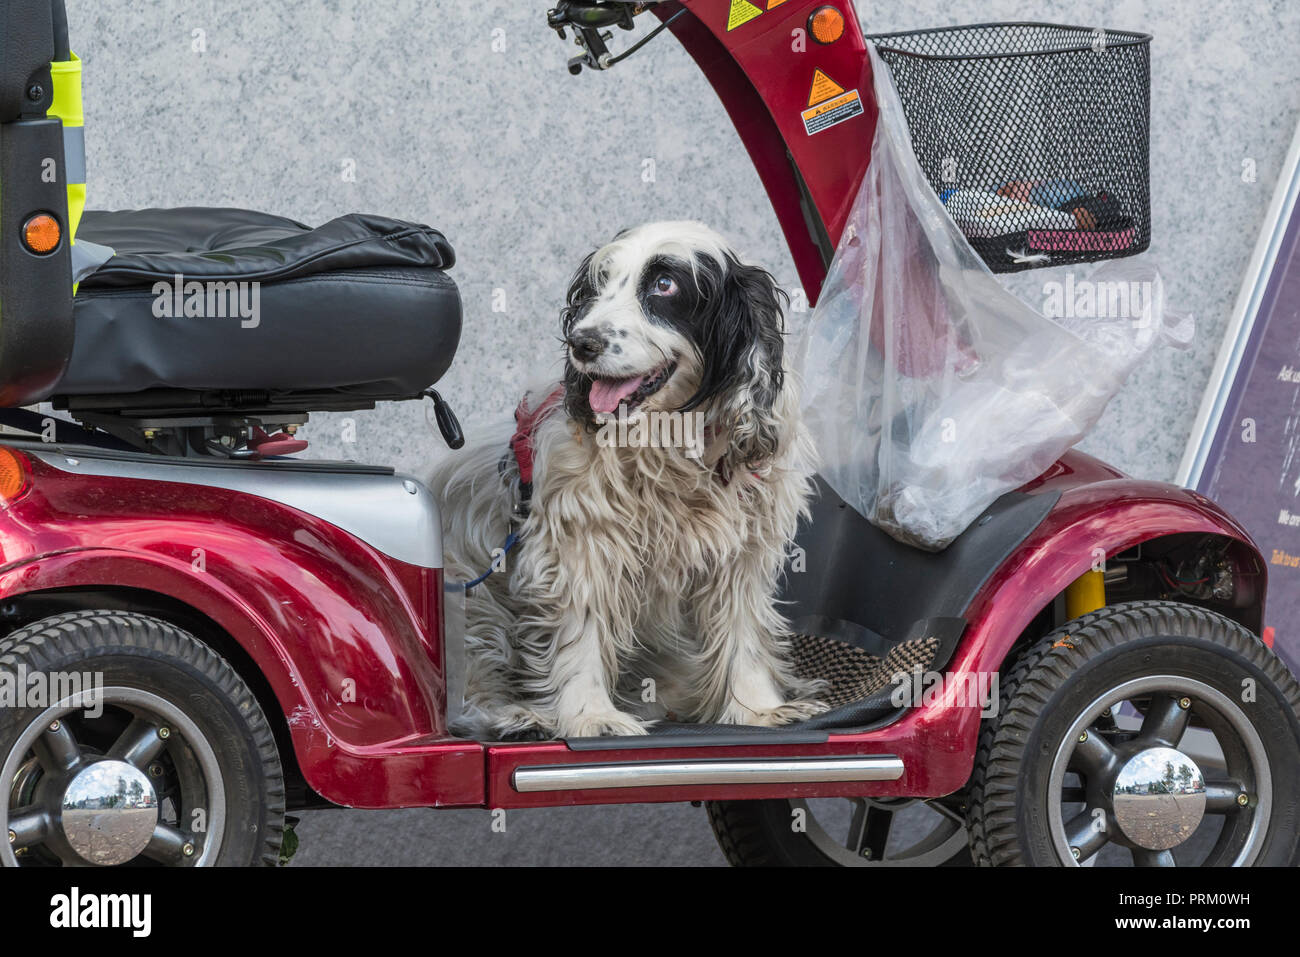 Dog On Mobility Scooter Stock Photos & Dog On Mobility Scooter Stock